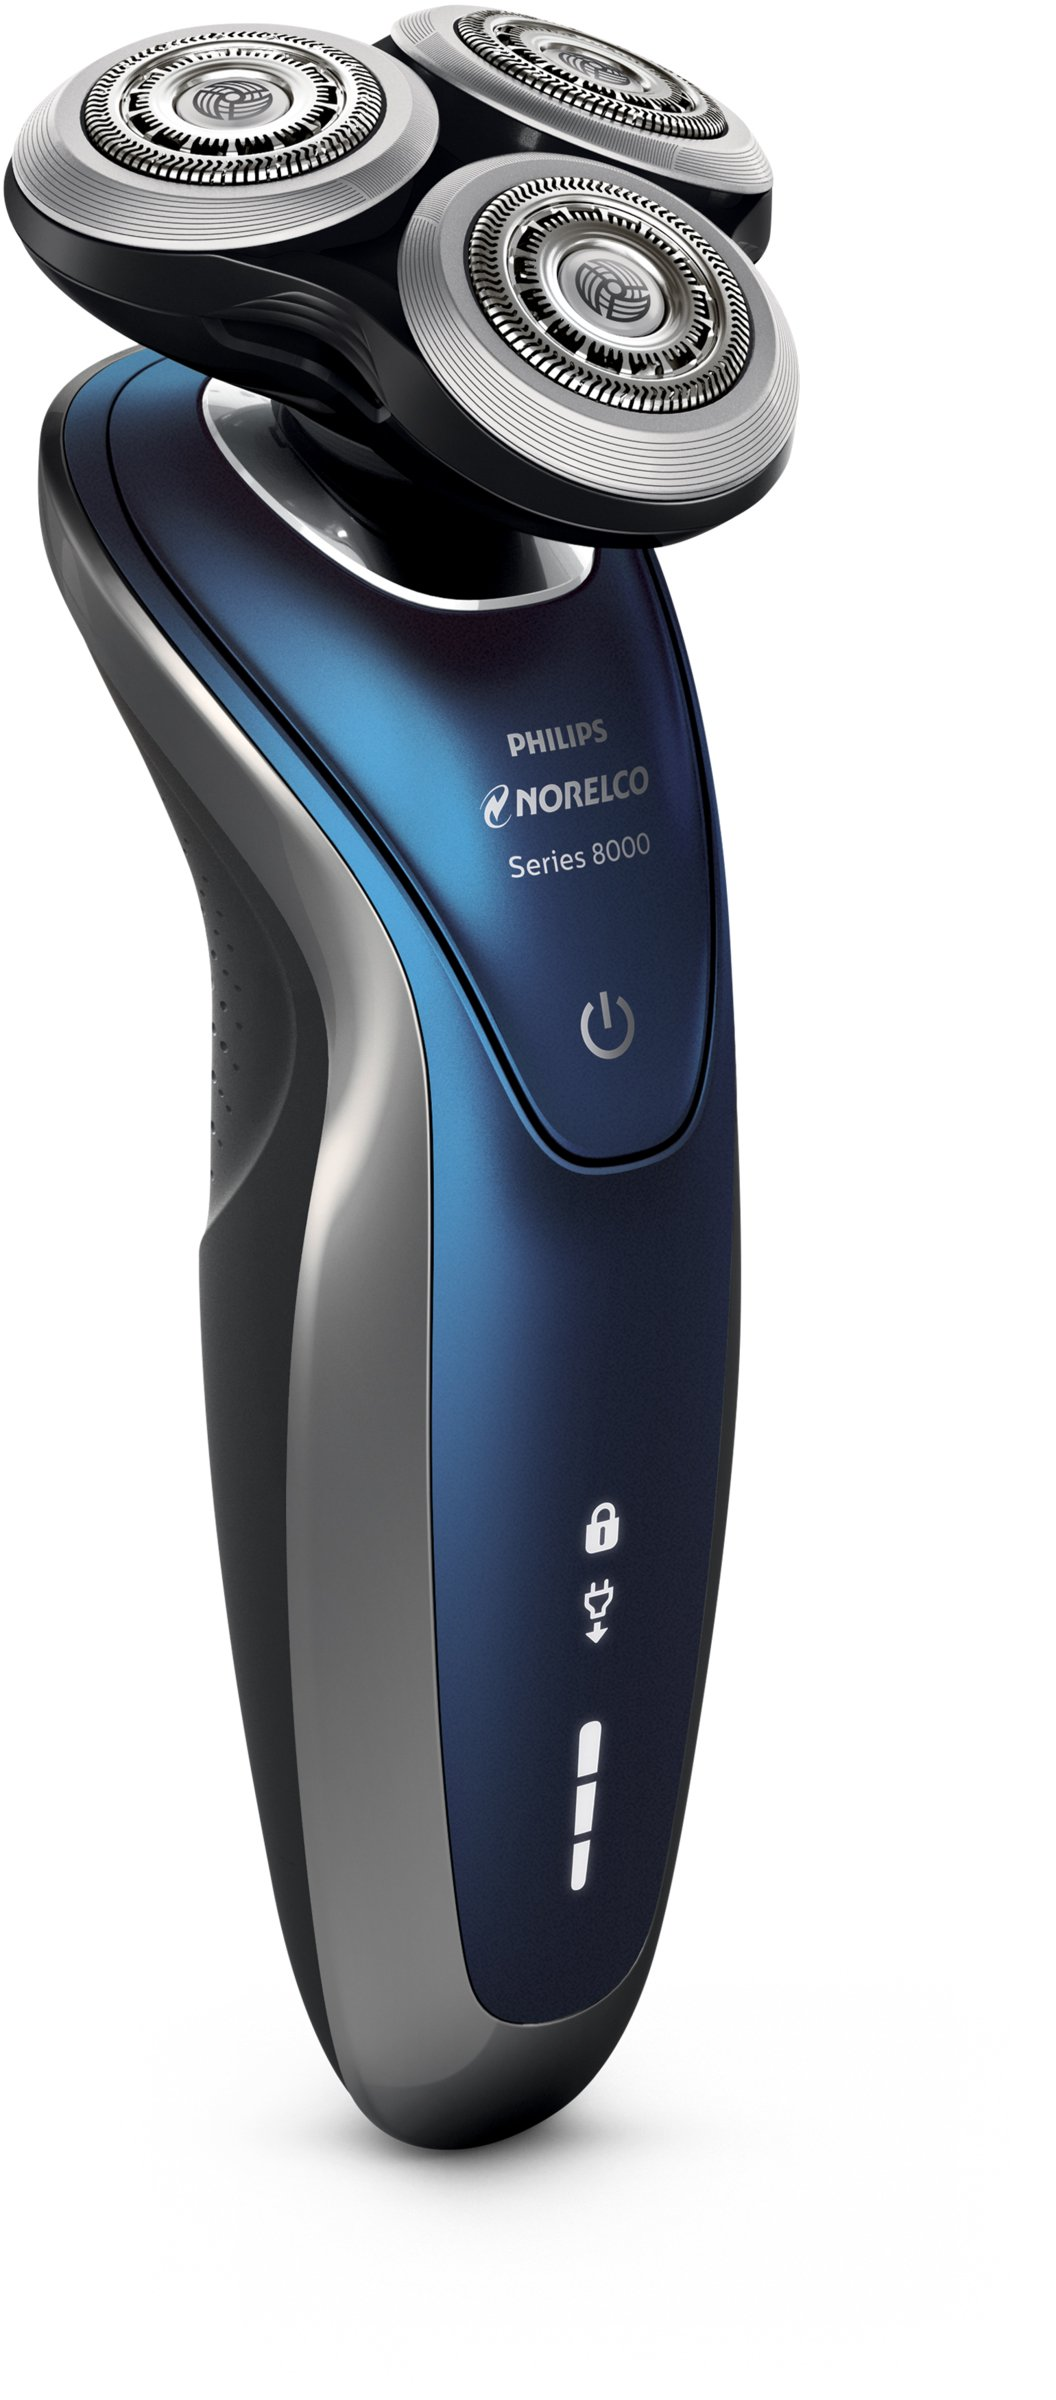 Philips Norelco Electric Shaver 8900 with SmartClean, Wet & Dry Edition S8950/90 by Philips Norelco (Image #11)